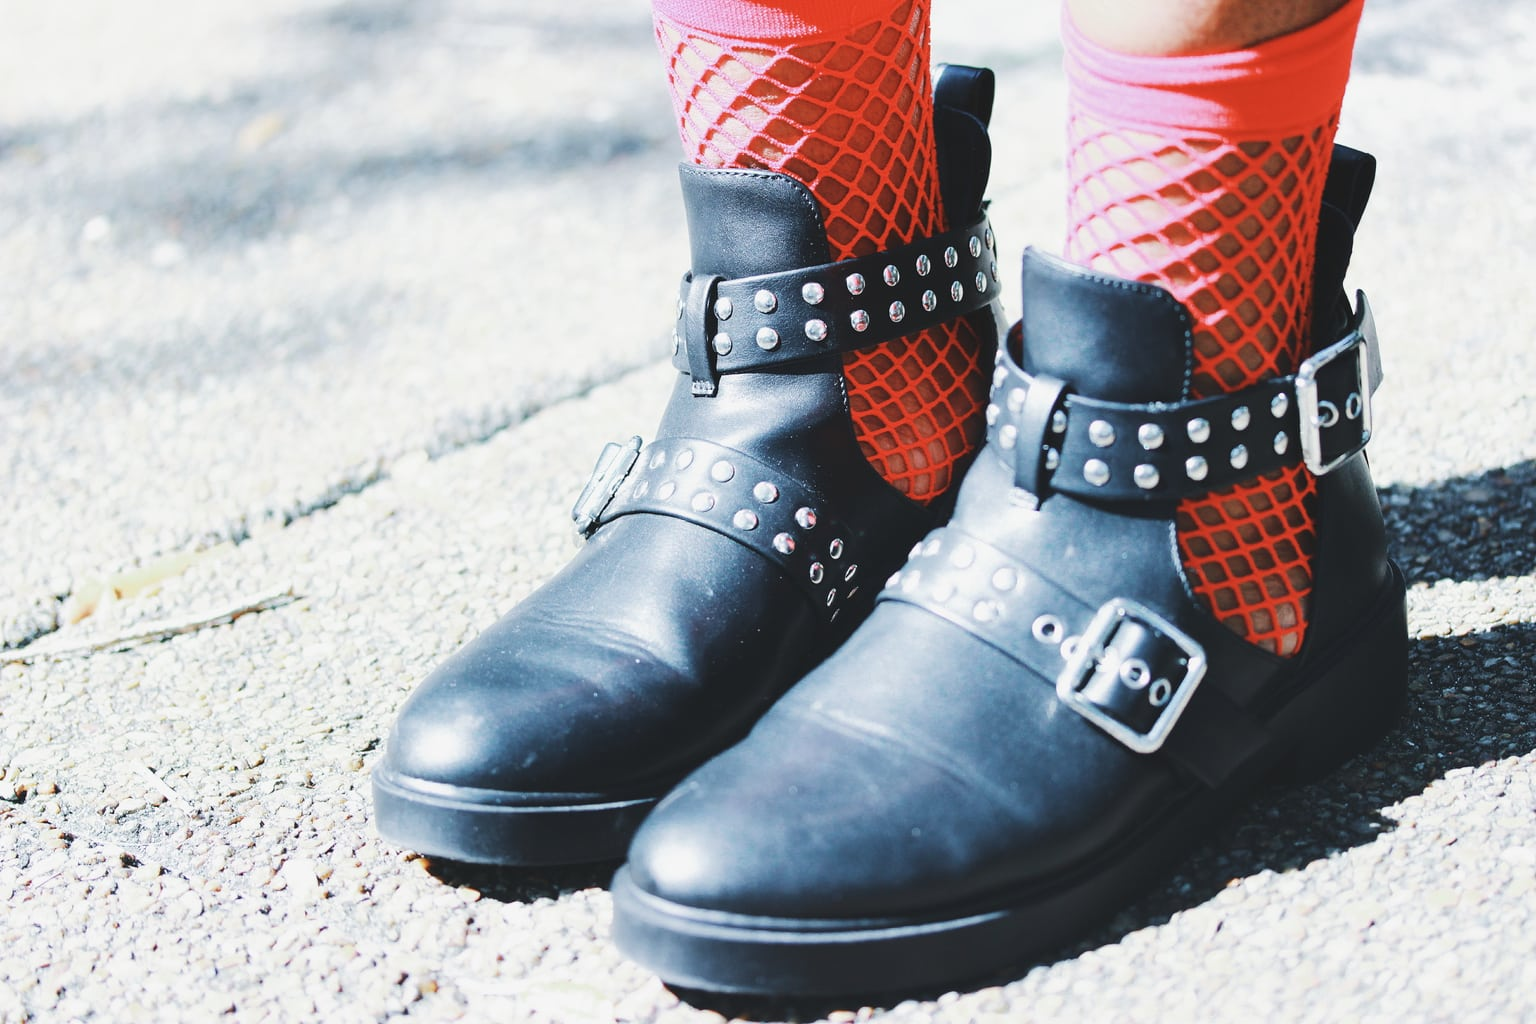 This student's look is polished off with flat studded sandal-boots with multiple buckles and red fishnet socks.